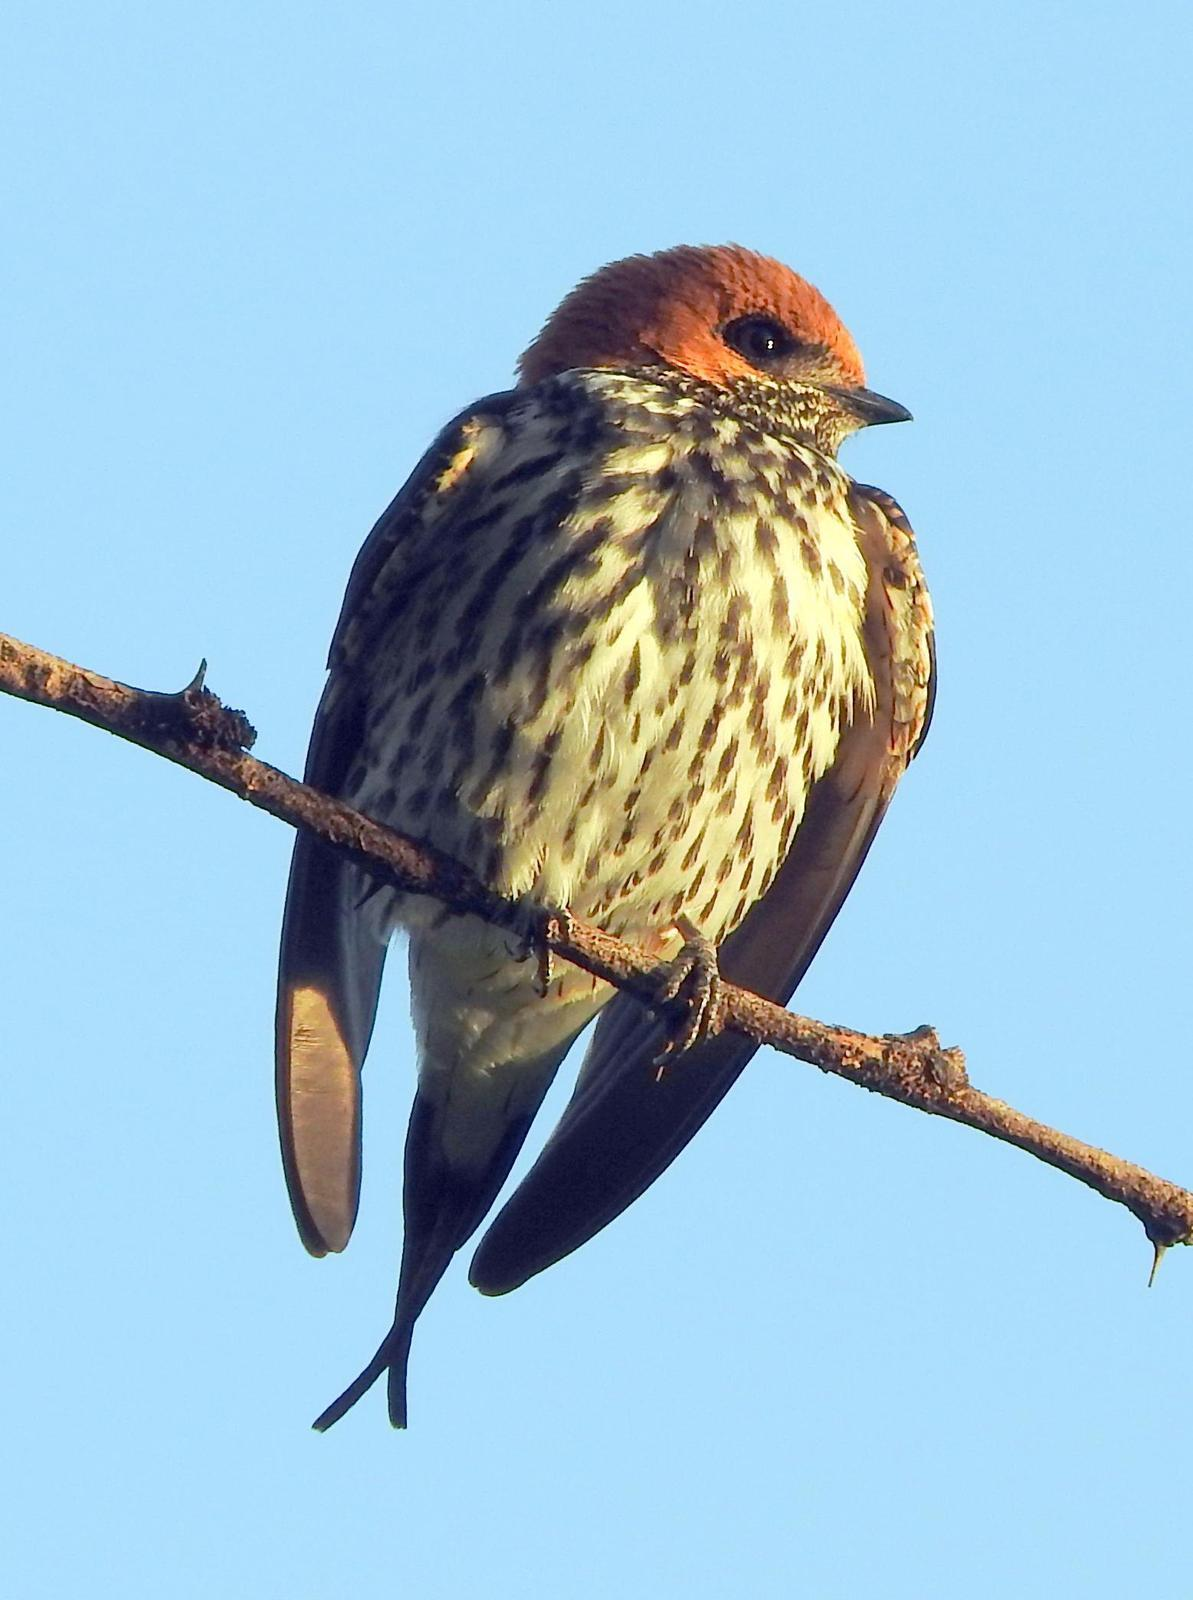 Lesser Striped-Swallow Photo by Todd A. Watkins